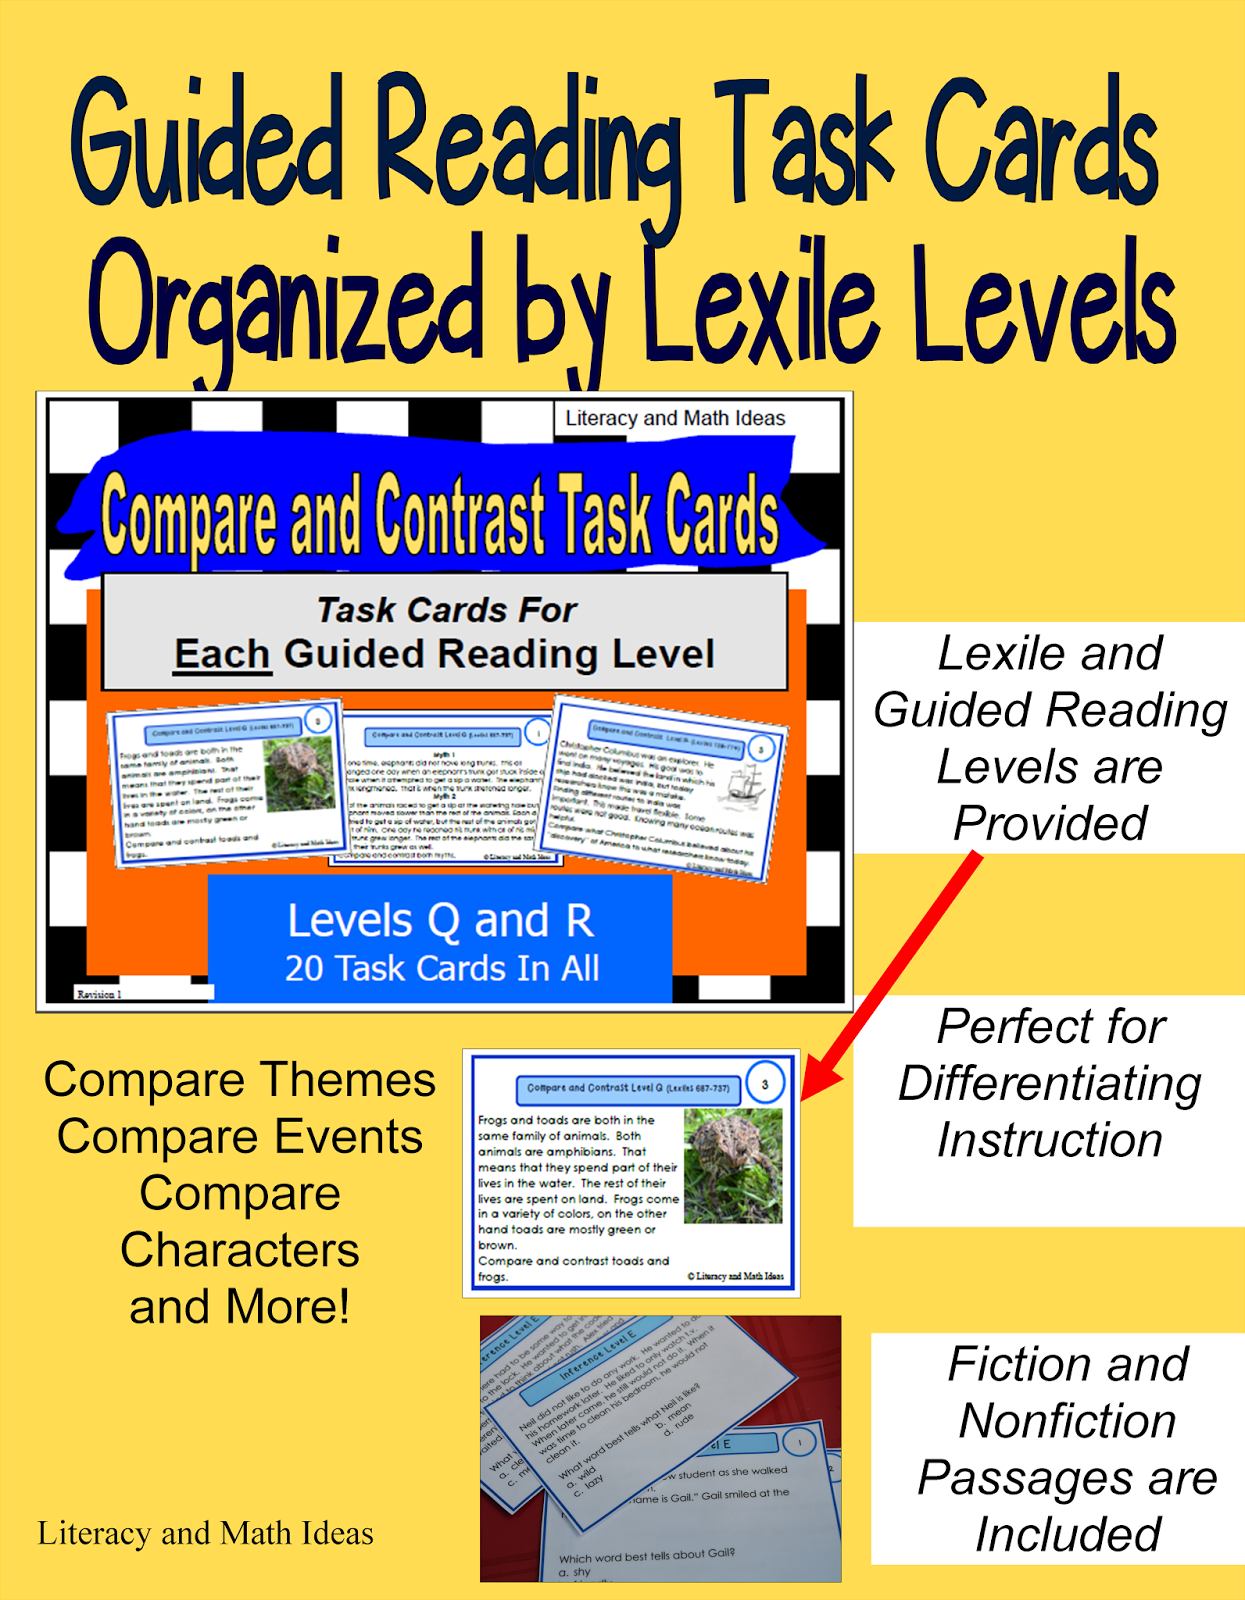 Worksheet Q Reading Level literacy math ideas guided reading task cards that are this makes it much easier to monitor student progress and help students at their individual levels click the link access these tas